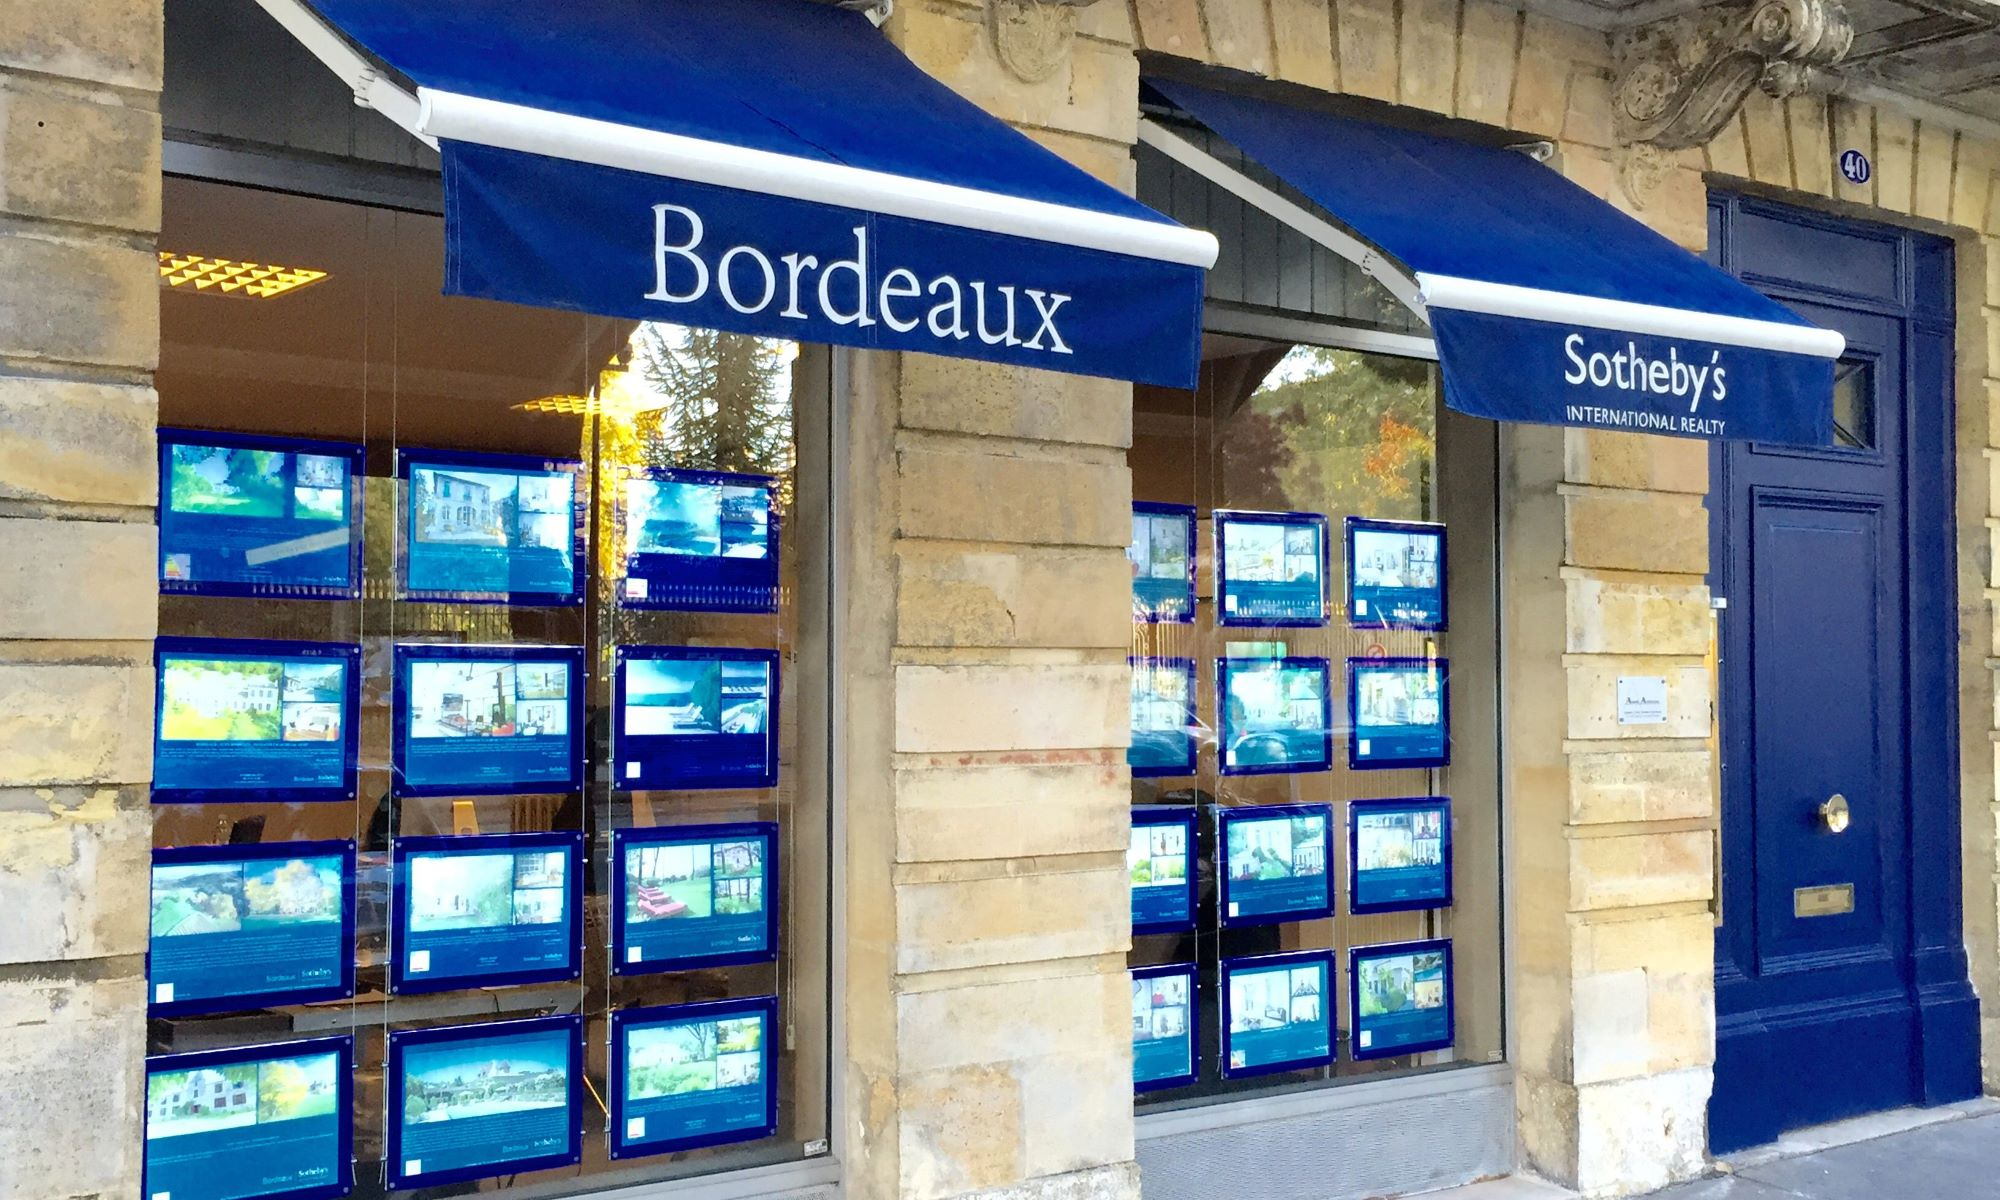 Office Bordeaux Sotheby's International Realty Photo